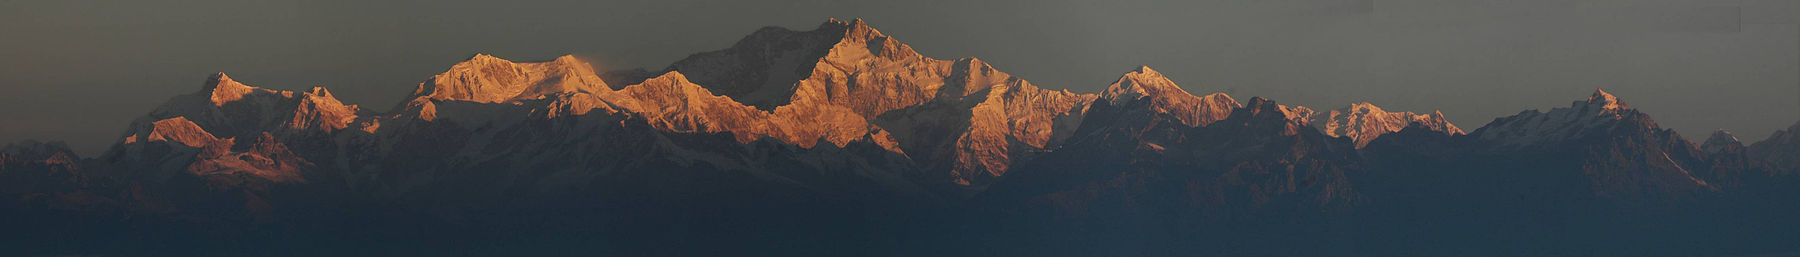 Darjeeling district header1.jpg